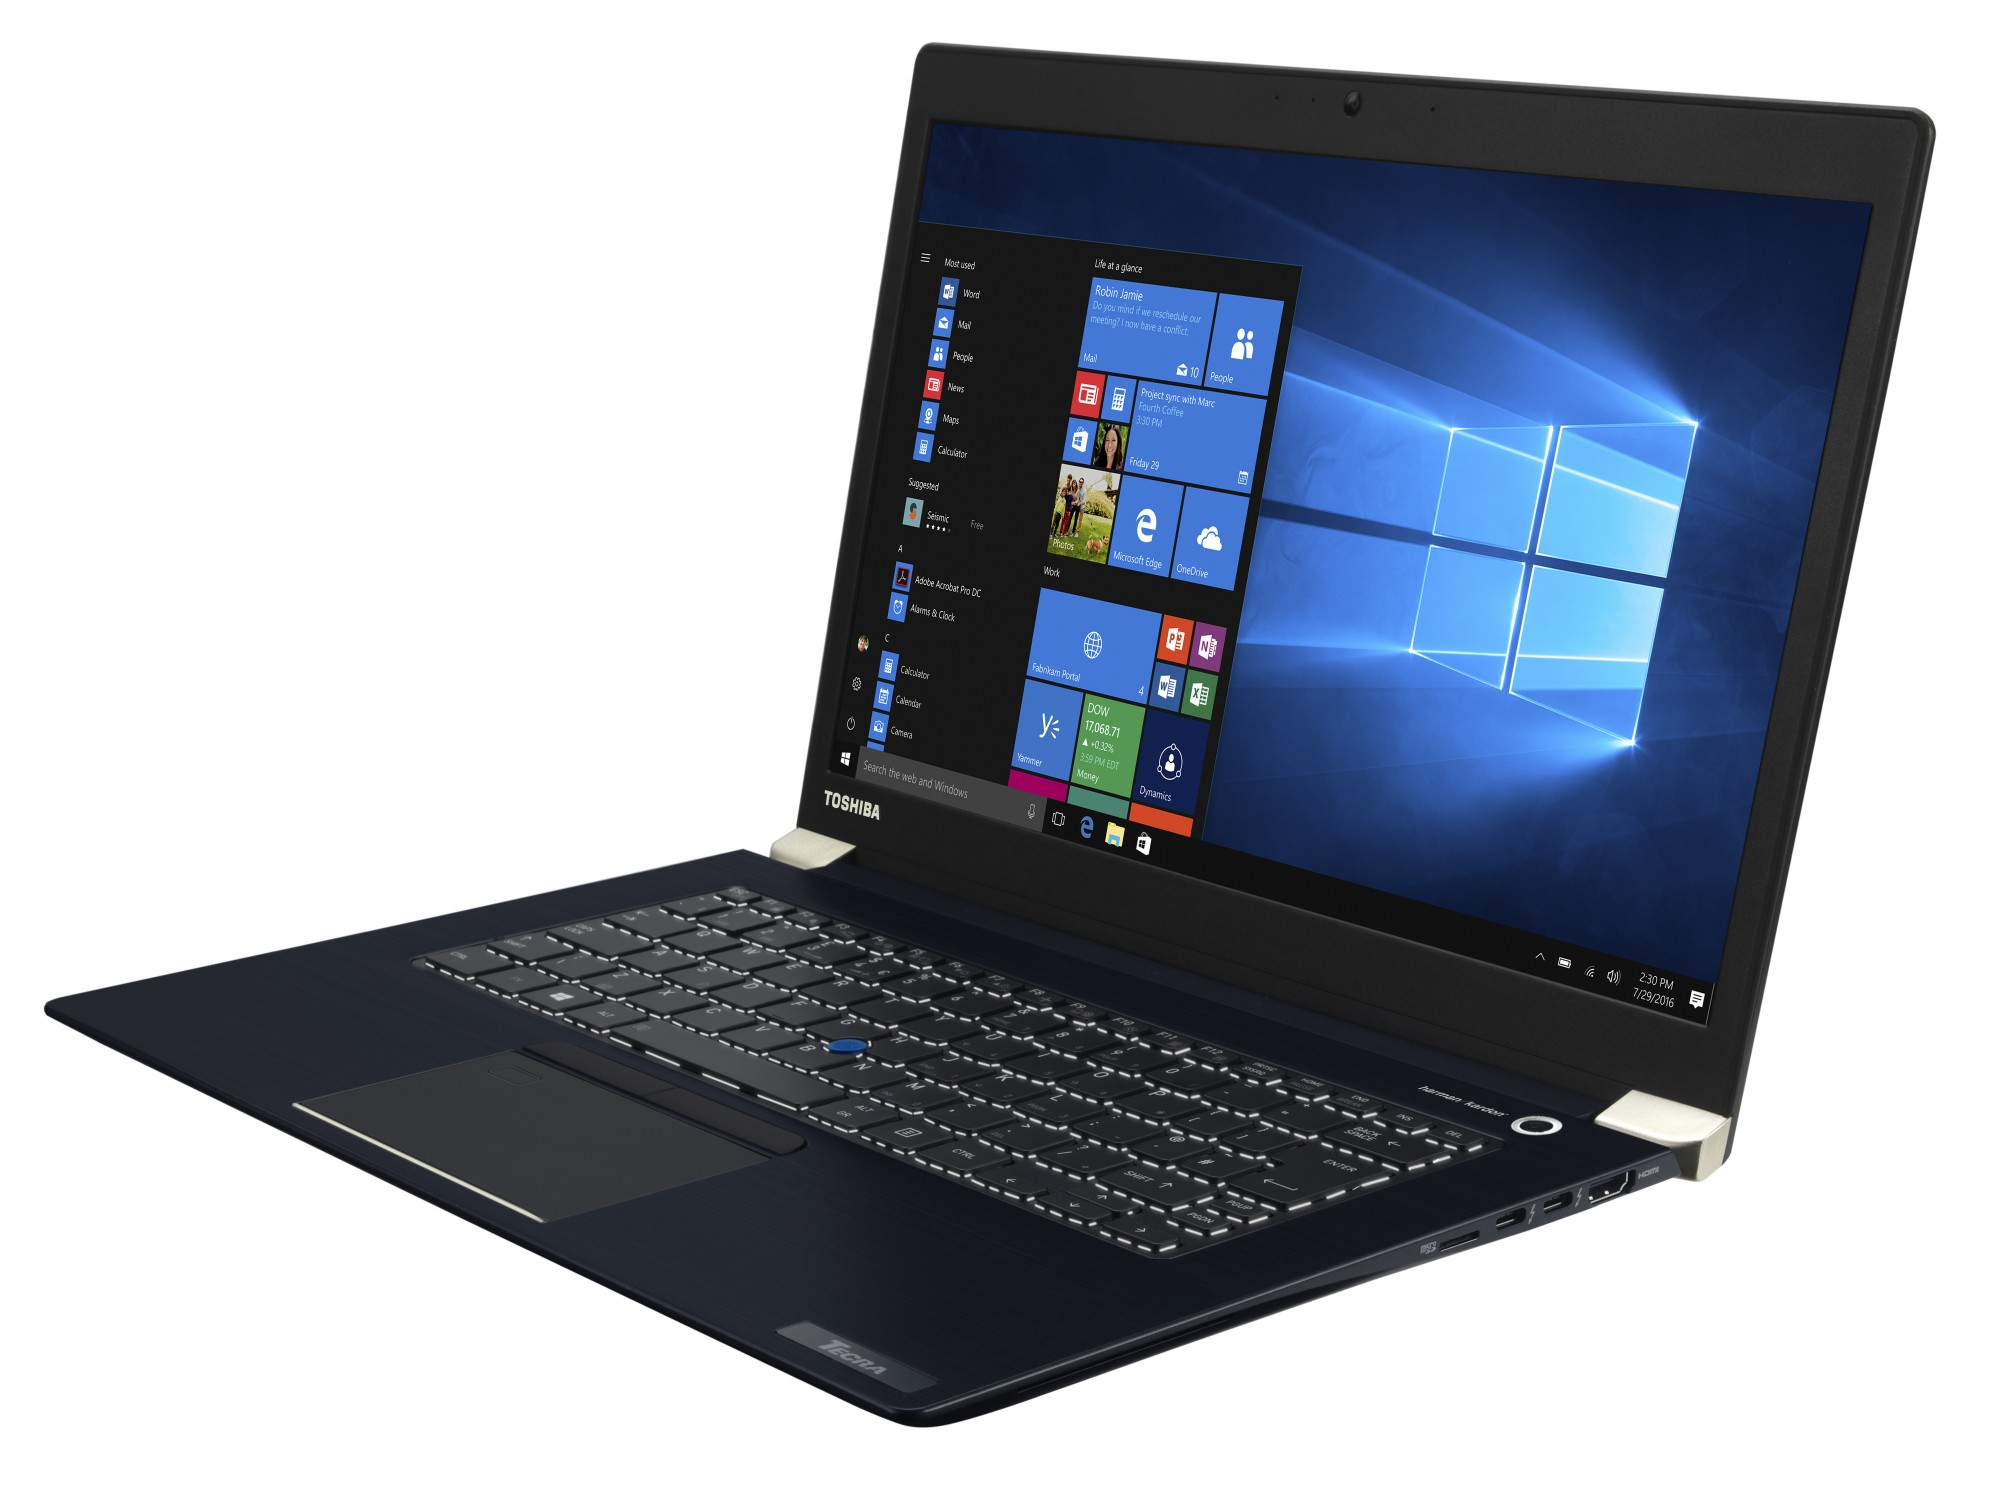 TOSHIBA TECRA M2V-S DRIVERS FOR WINDOWS